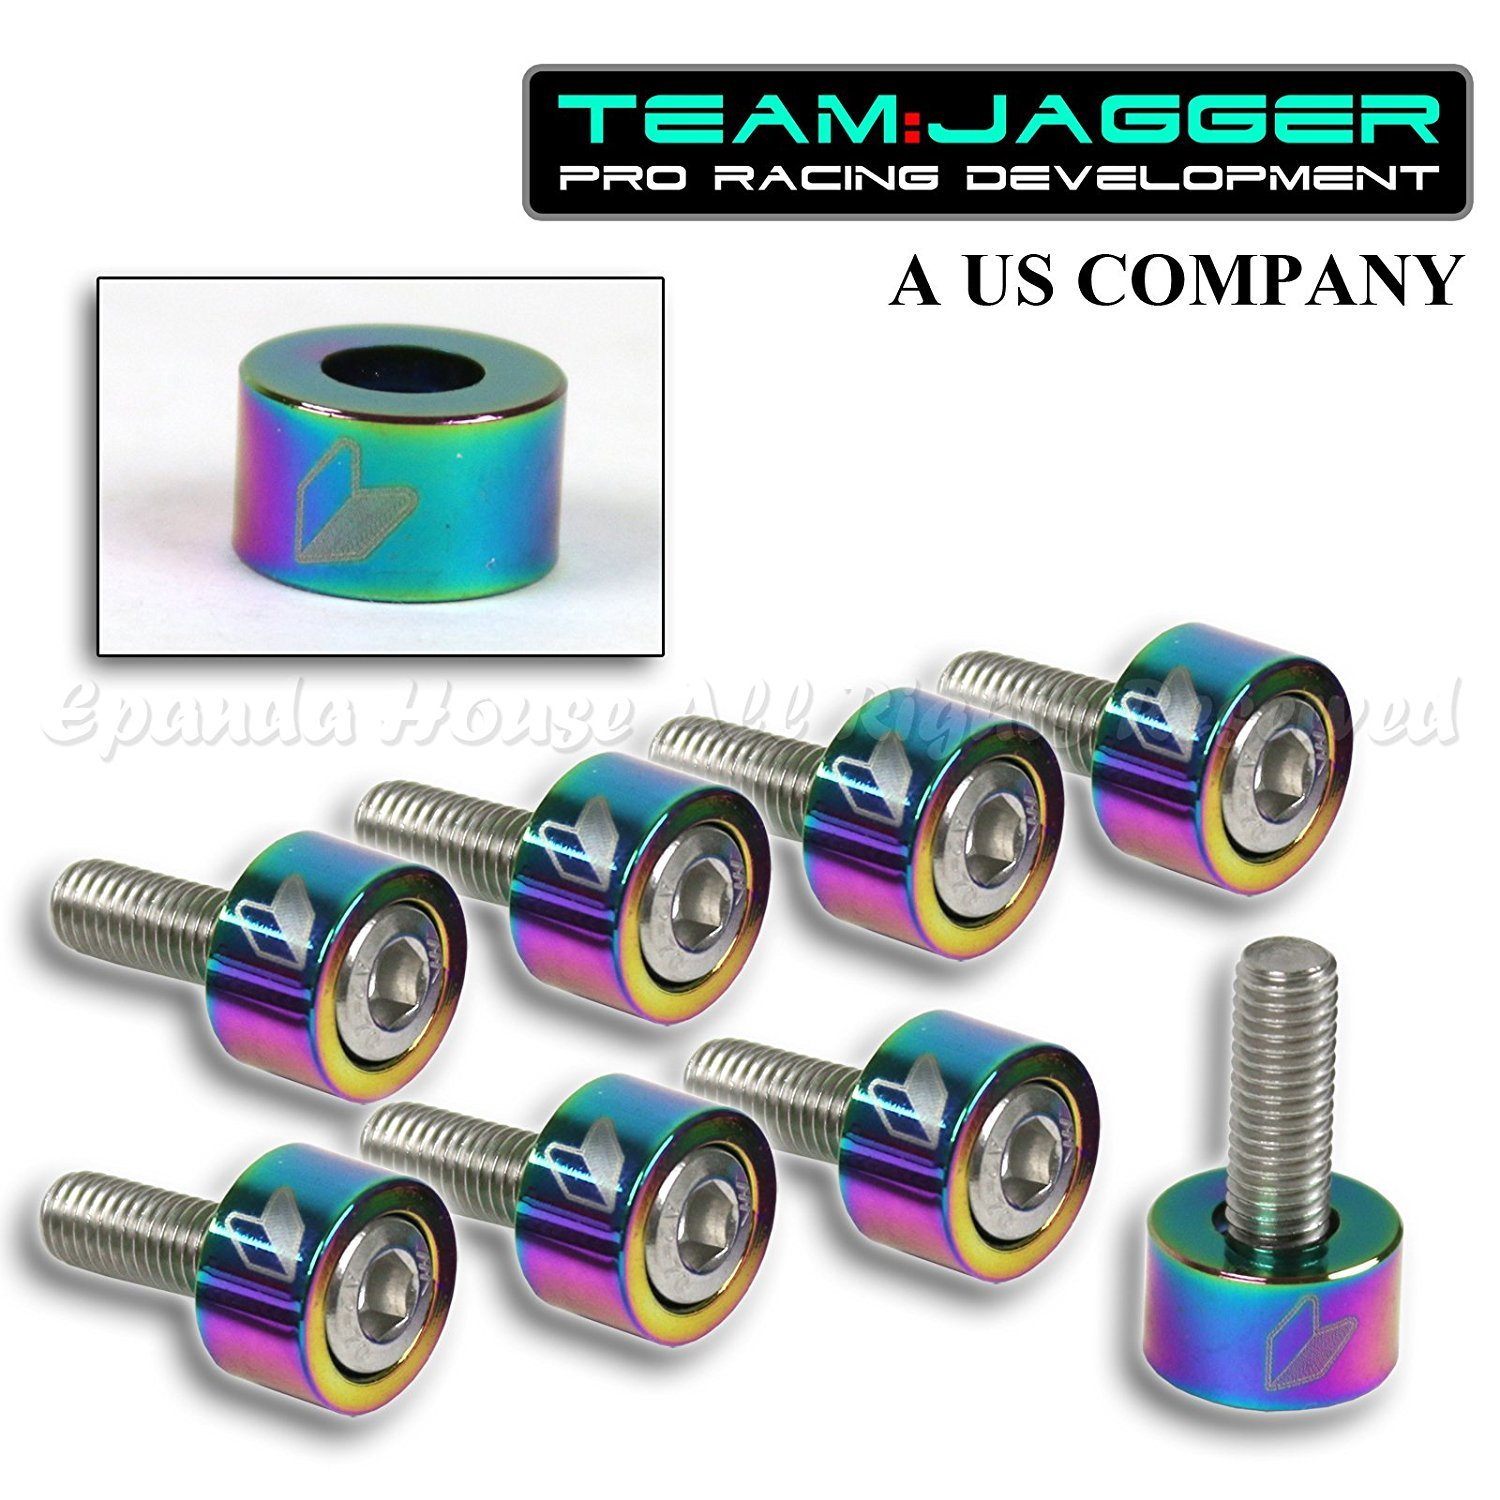 FOR 01-06 RSX DC5 JDM LOGO 9PC 8MM BOLTS HEADER CUP WASHERS BILLET ANODIZED NEO